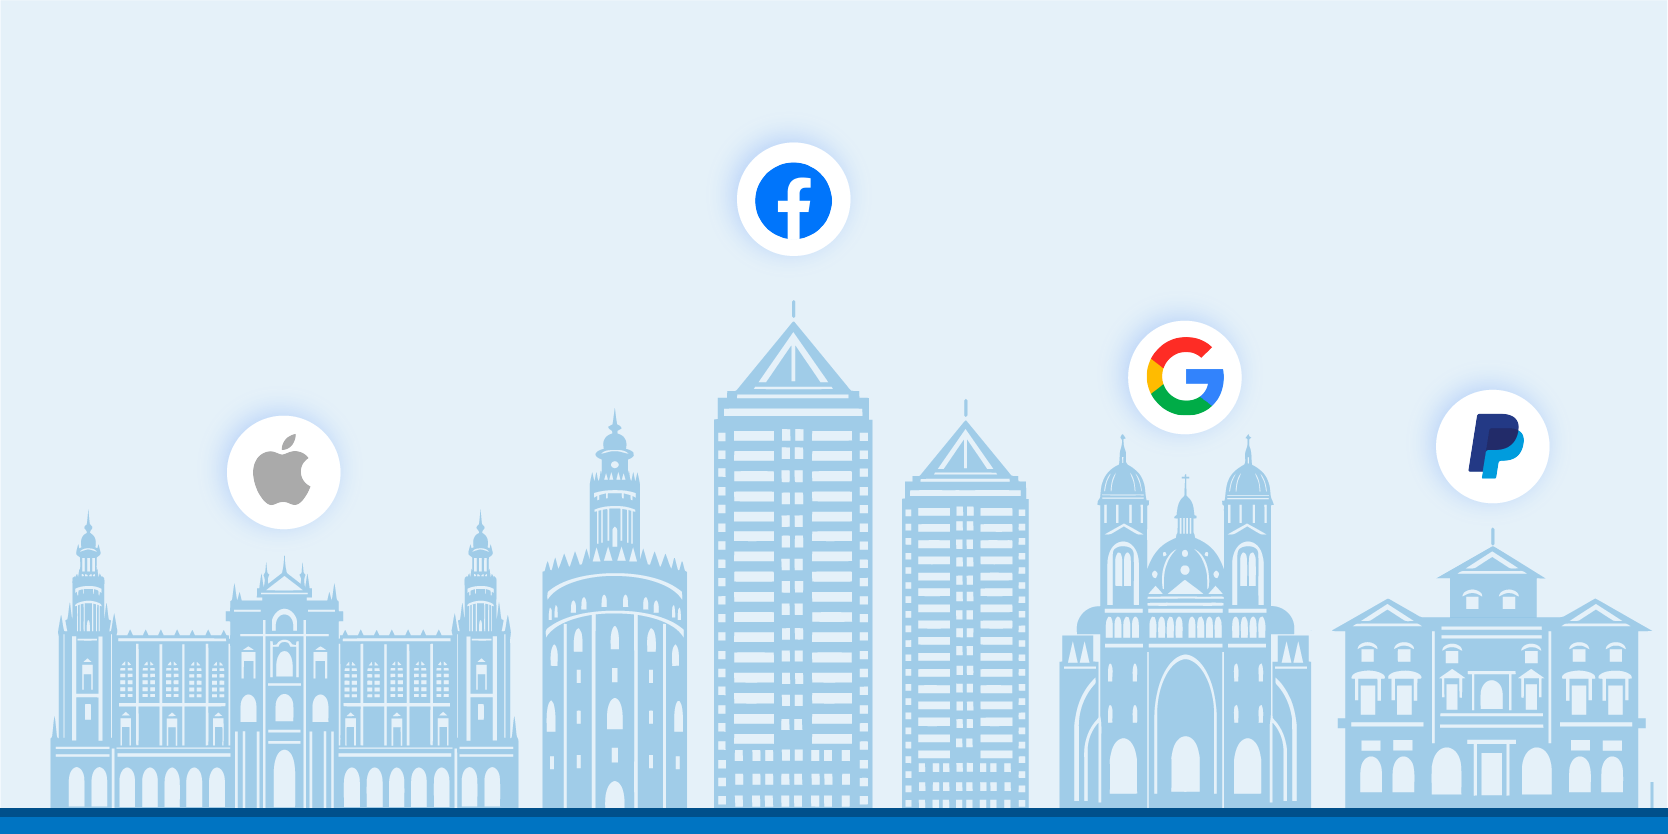 Big tech logos flying over banking institutions